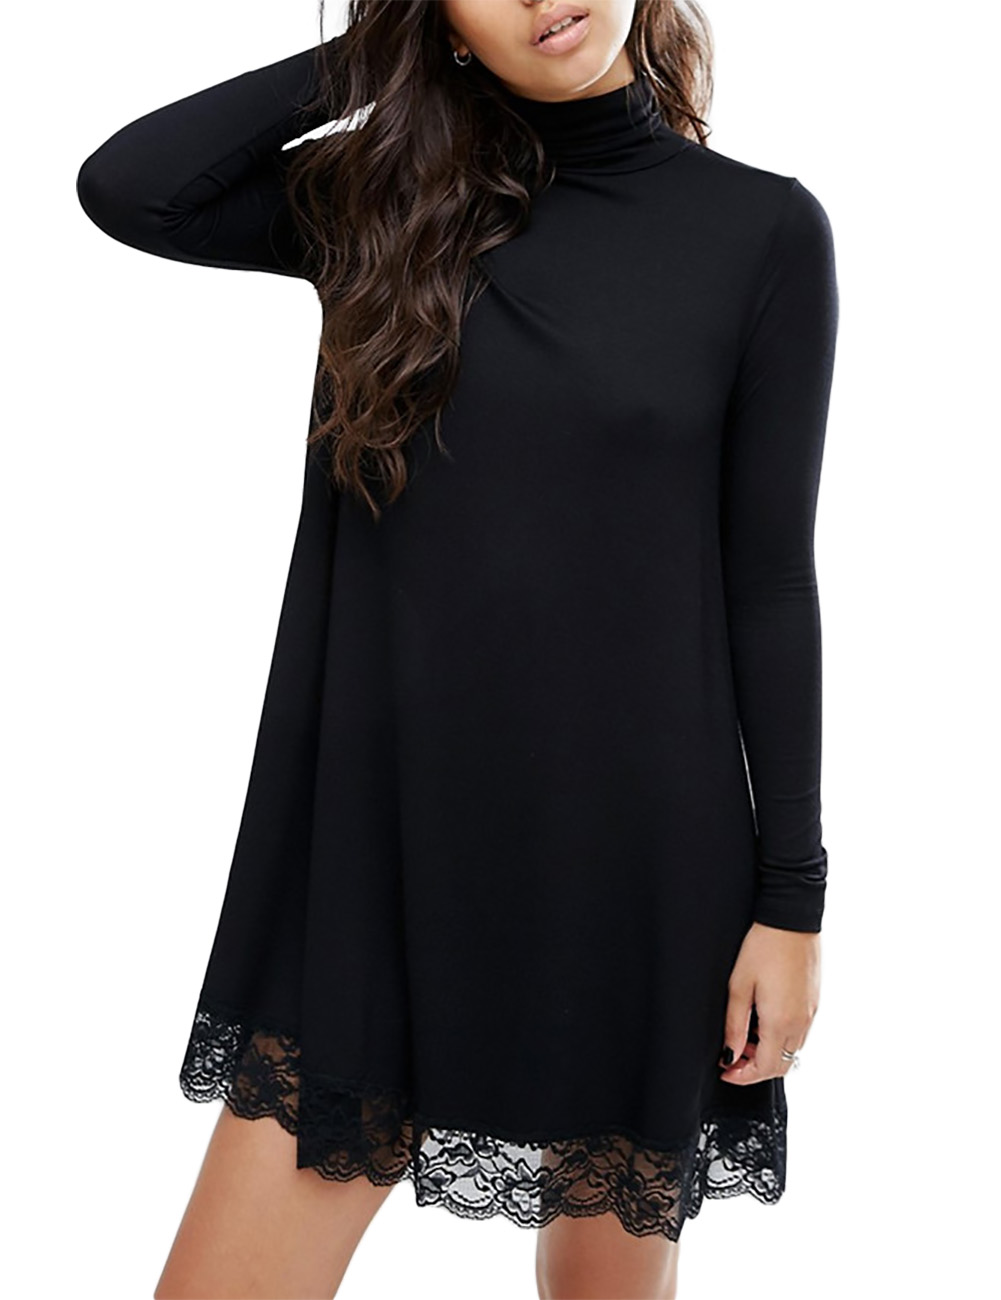 [US Direct] Leadingstar Women's Knitting Turtleneck Long Sleeve Loose Lace Cotton Casual Dress Black